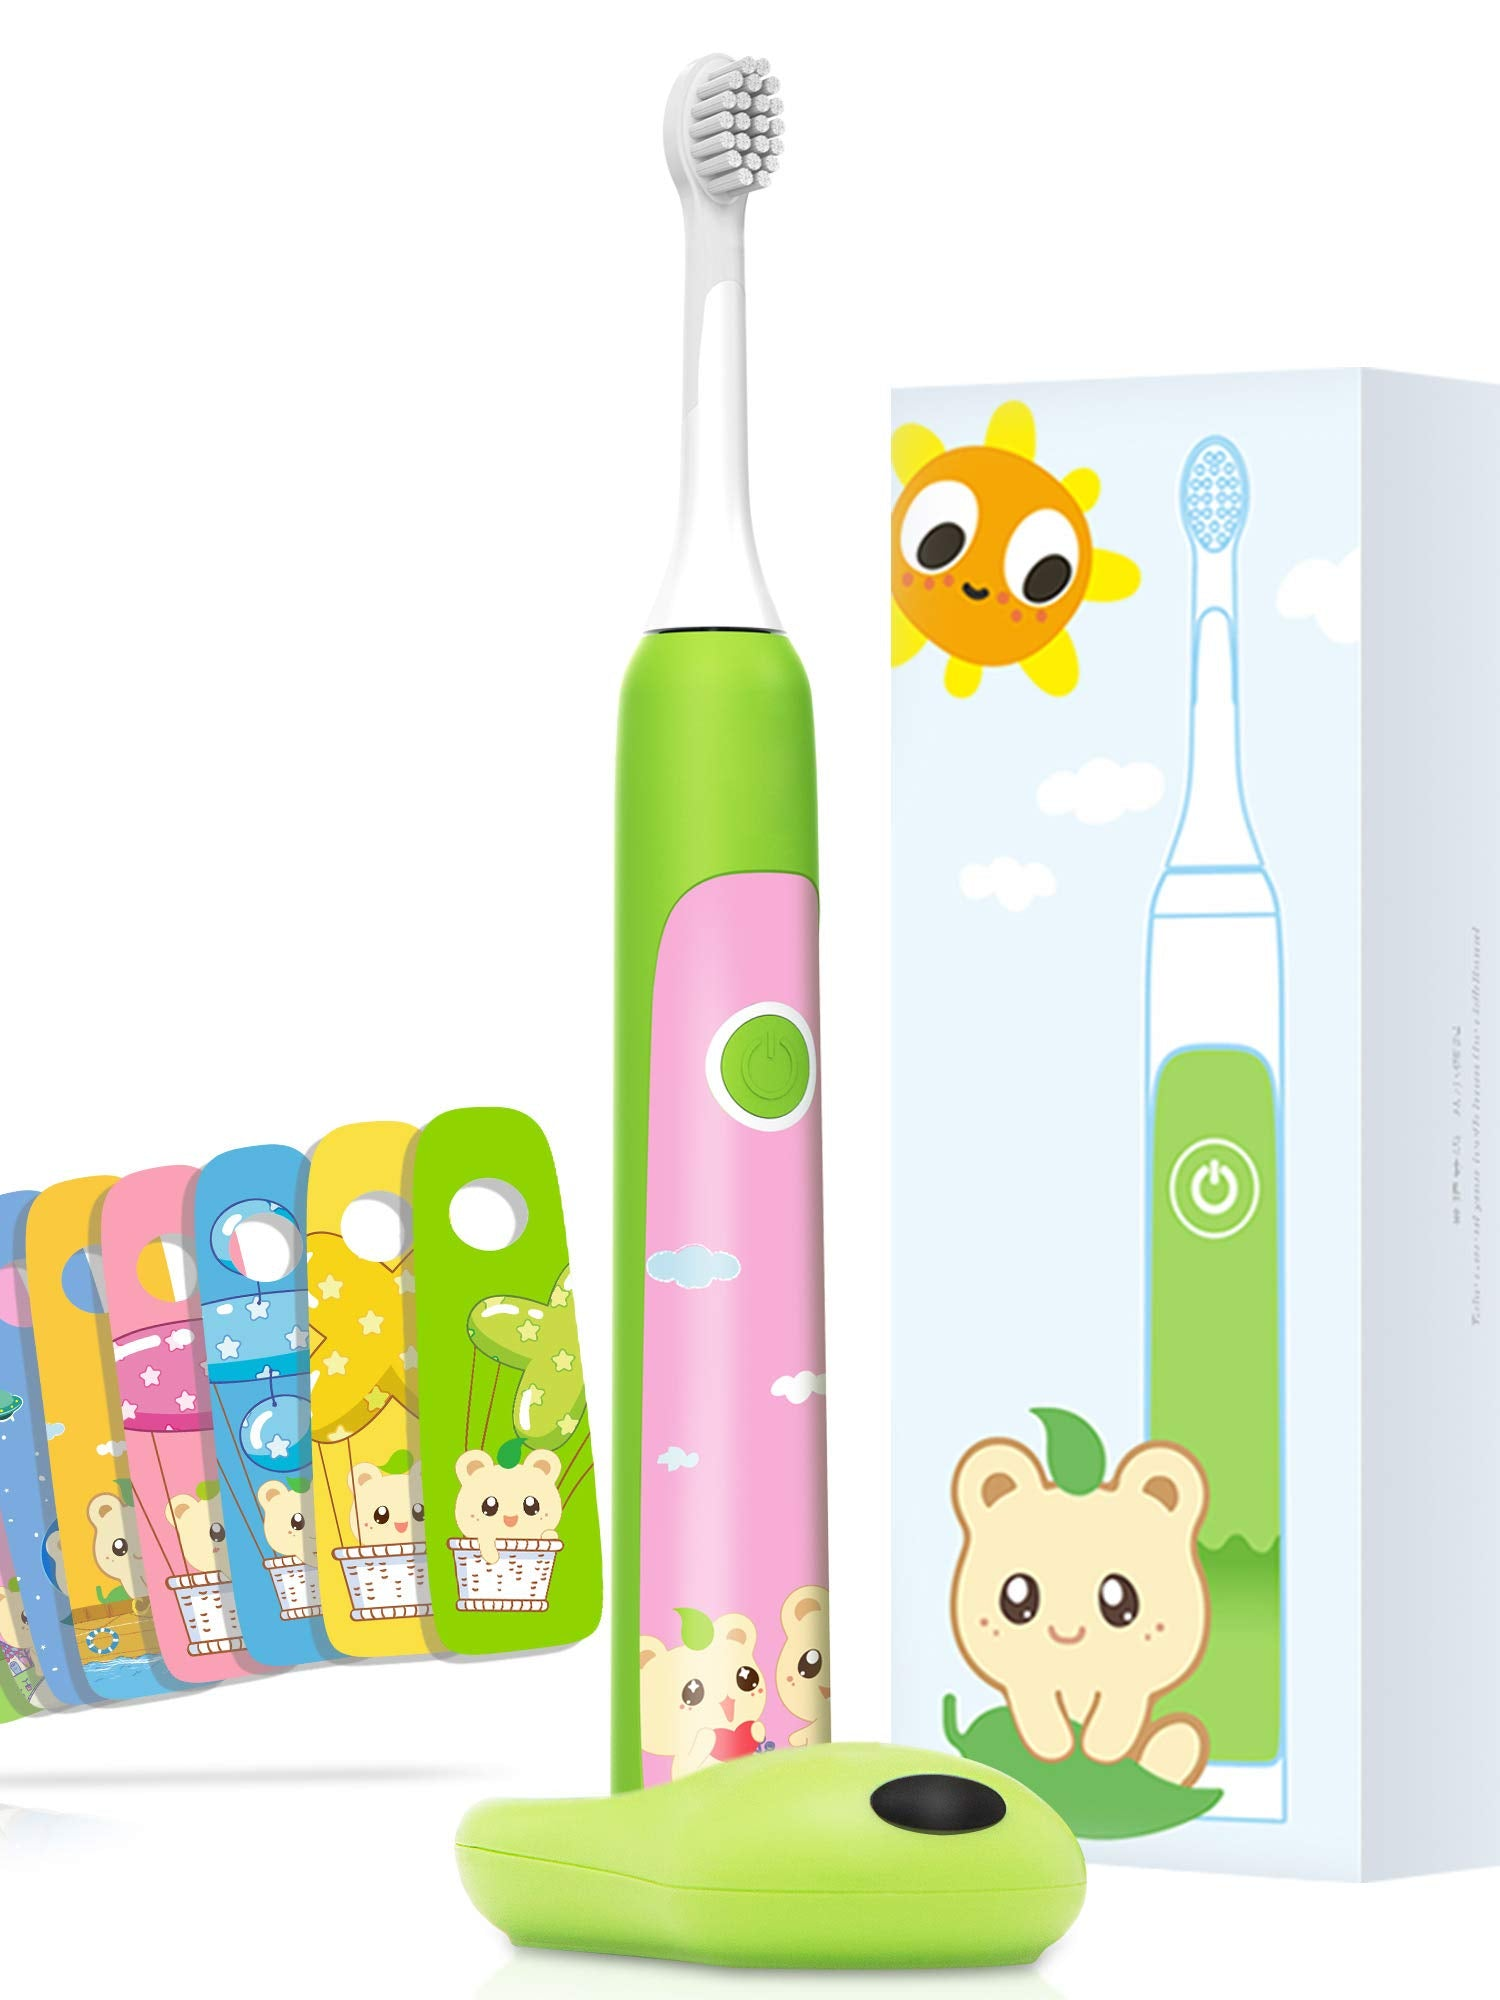 Aiwejay Kids SONIC Electric Toothbrush Reachable For ages 3-12,8 Cute Stickers, 3 Vibration Modes,Green